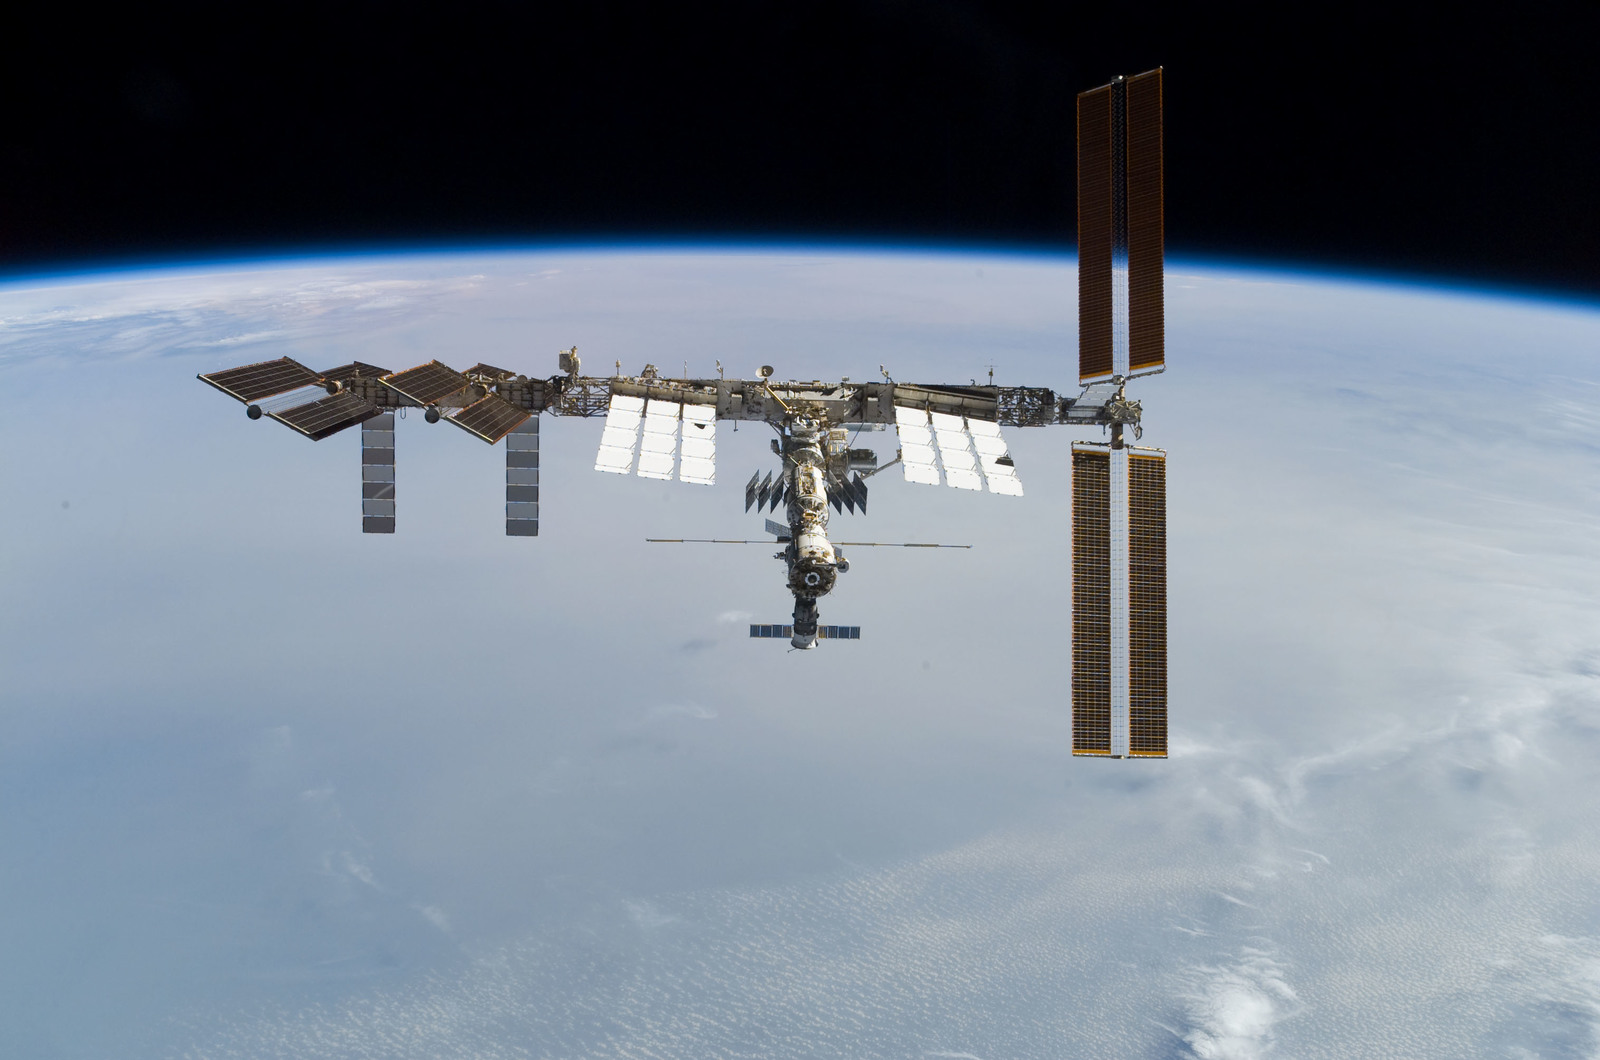 S122E010957 - STS-122 - View of ISS after STS-122 Undocking